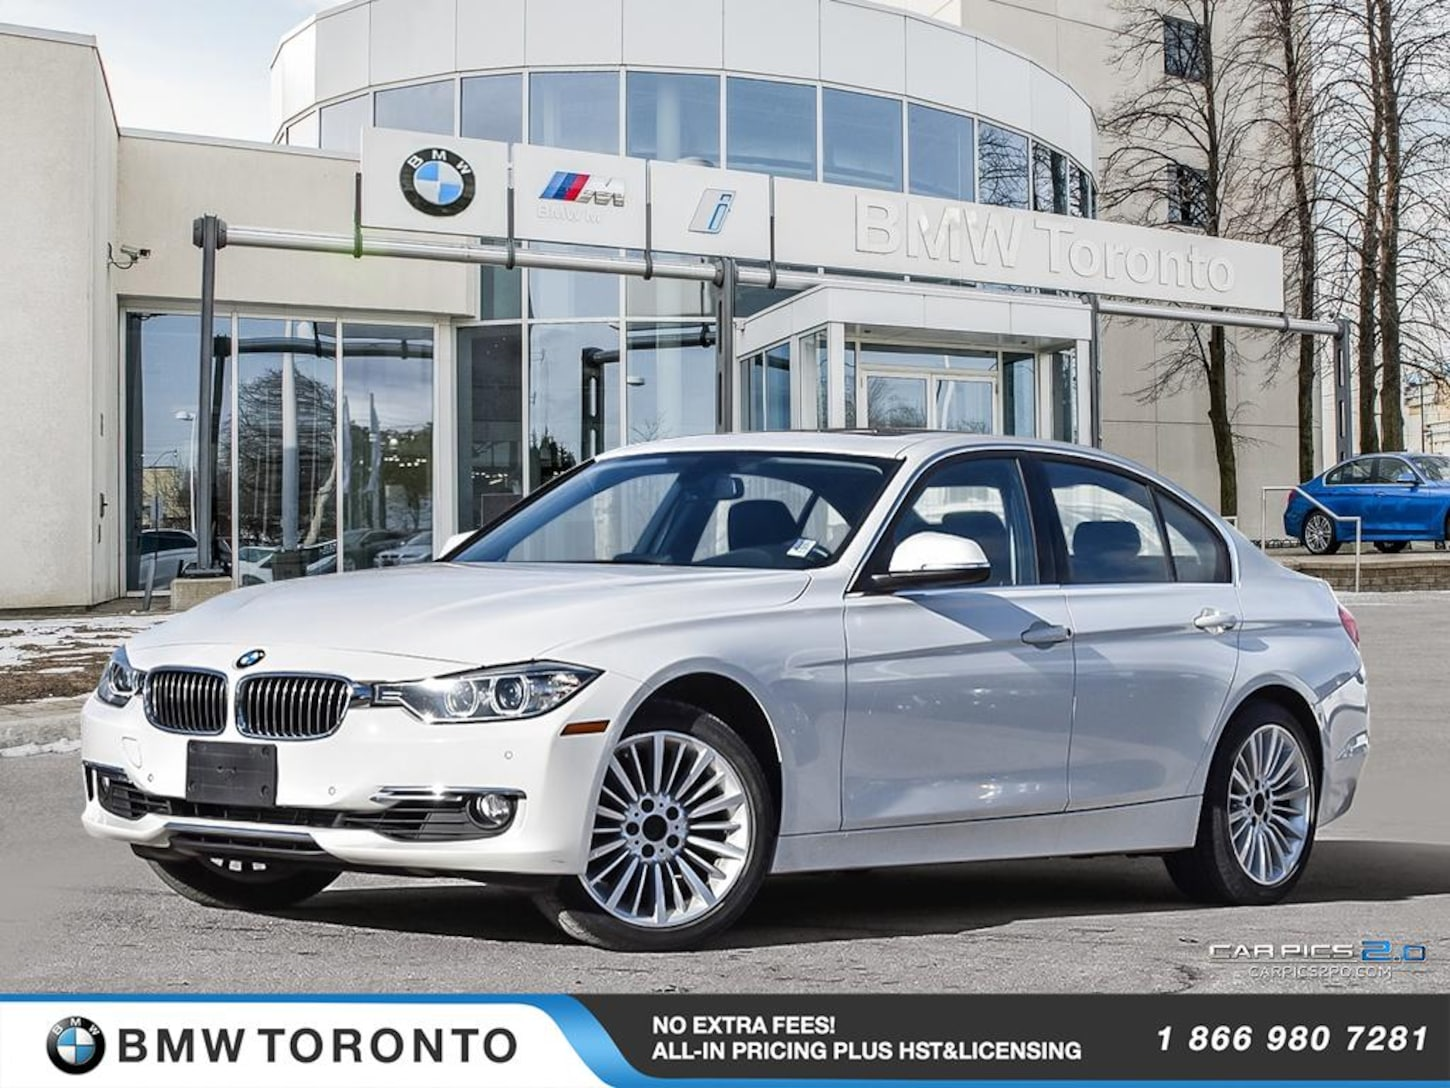 2014 BMW 328i Xdrive Sedan (3B37) W/ Nav! Financing Available!